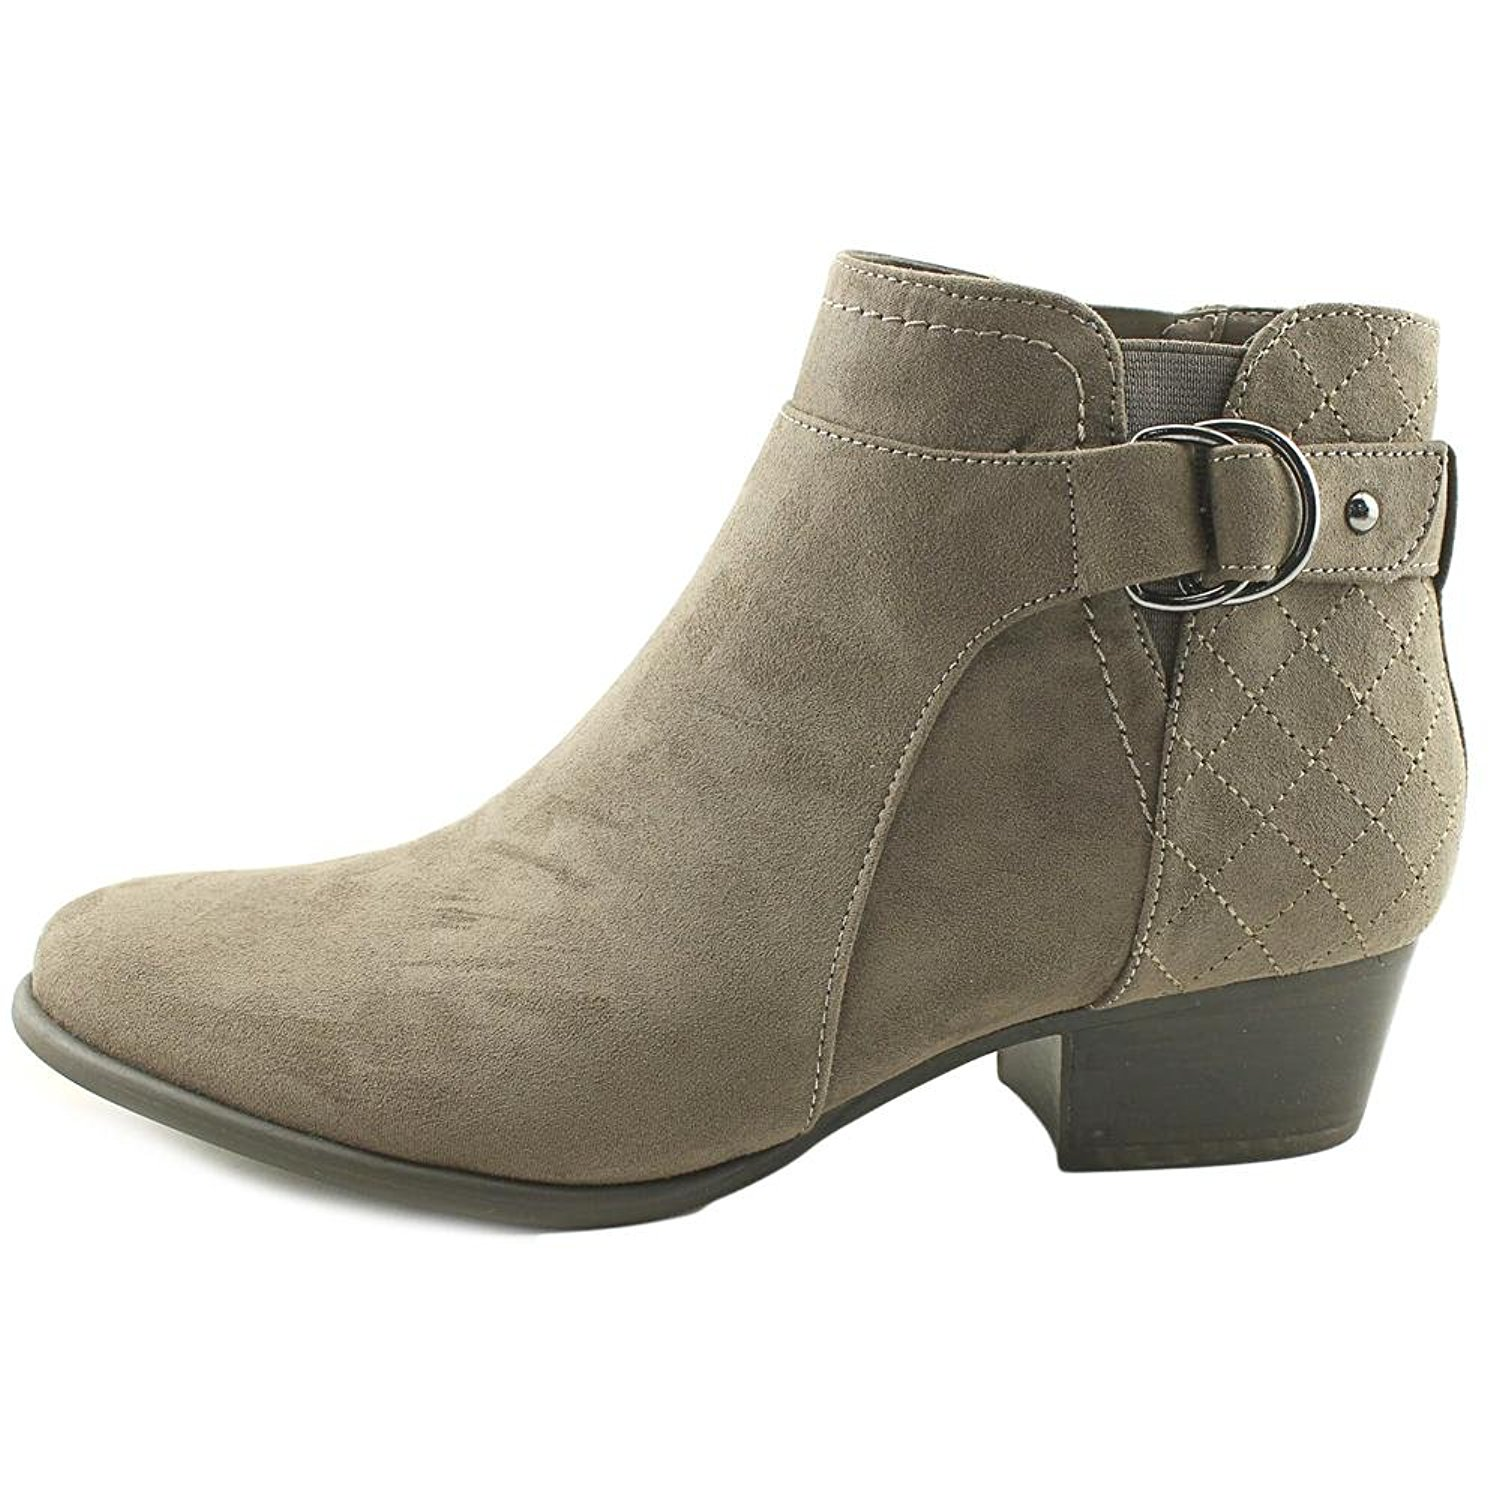 Unisa Womens Piera Suede Boots, Closed Toe Ankle Fashion Boots, Suede taupe fabric, Size 8.0 361777